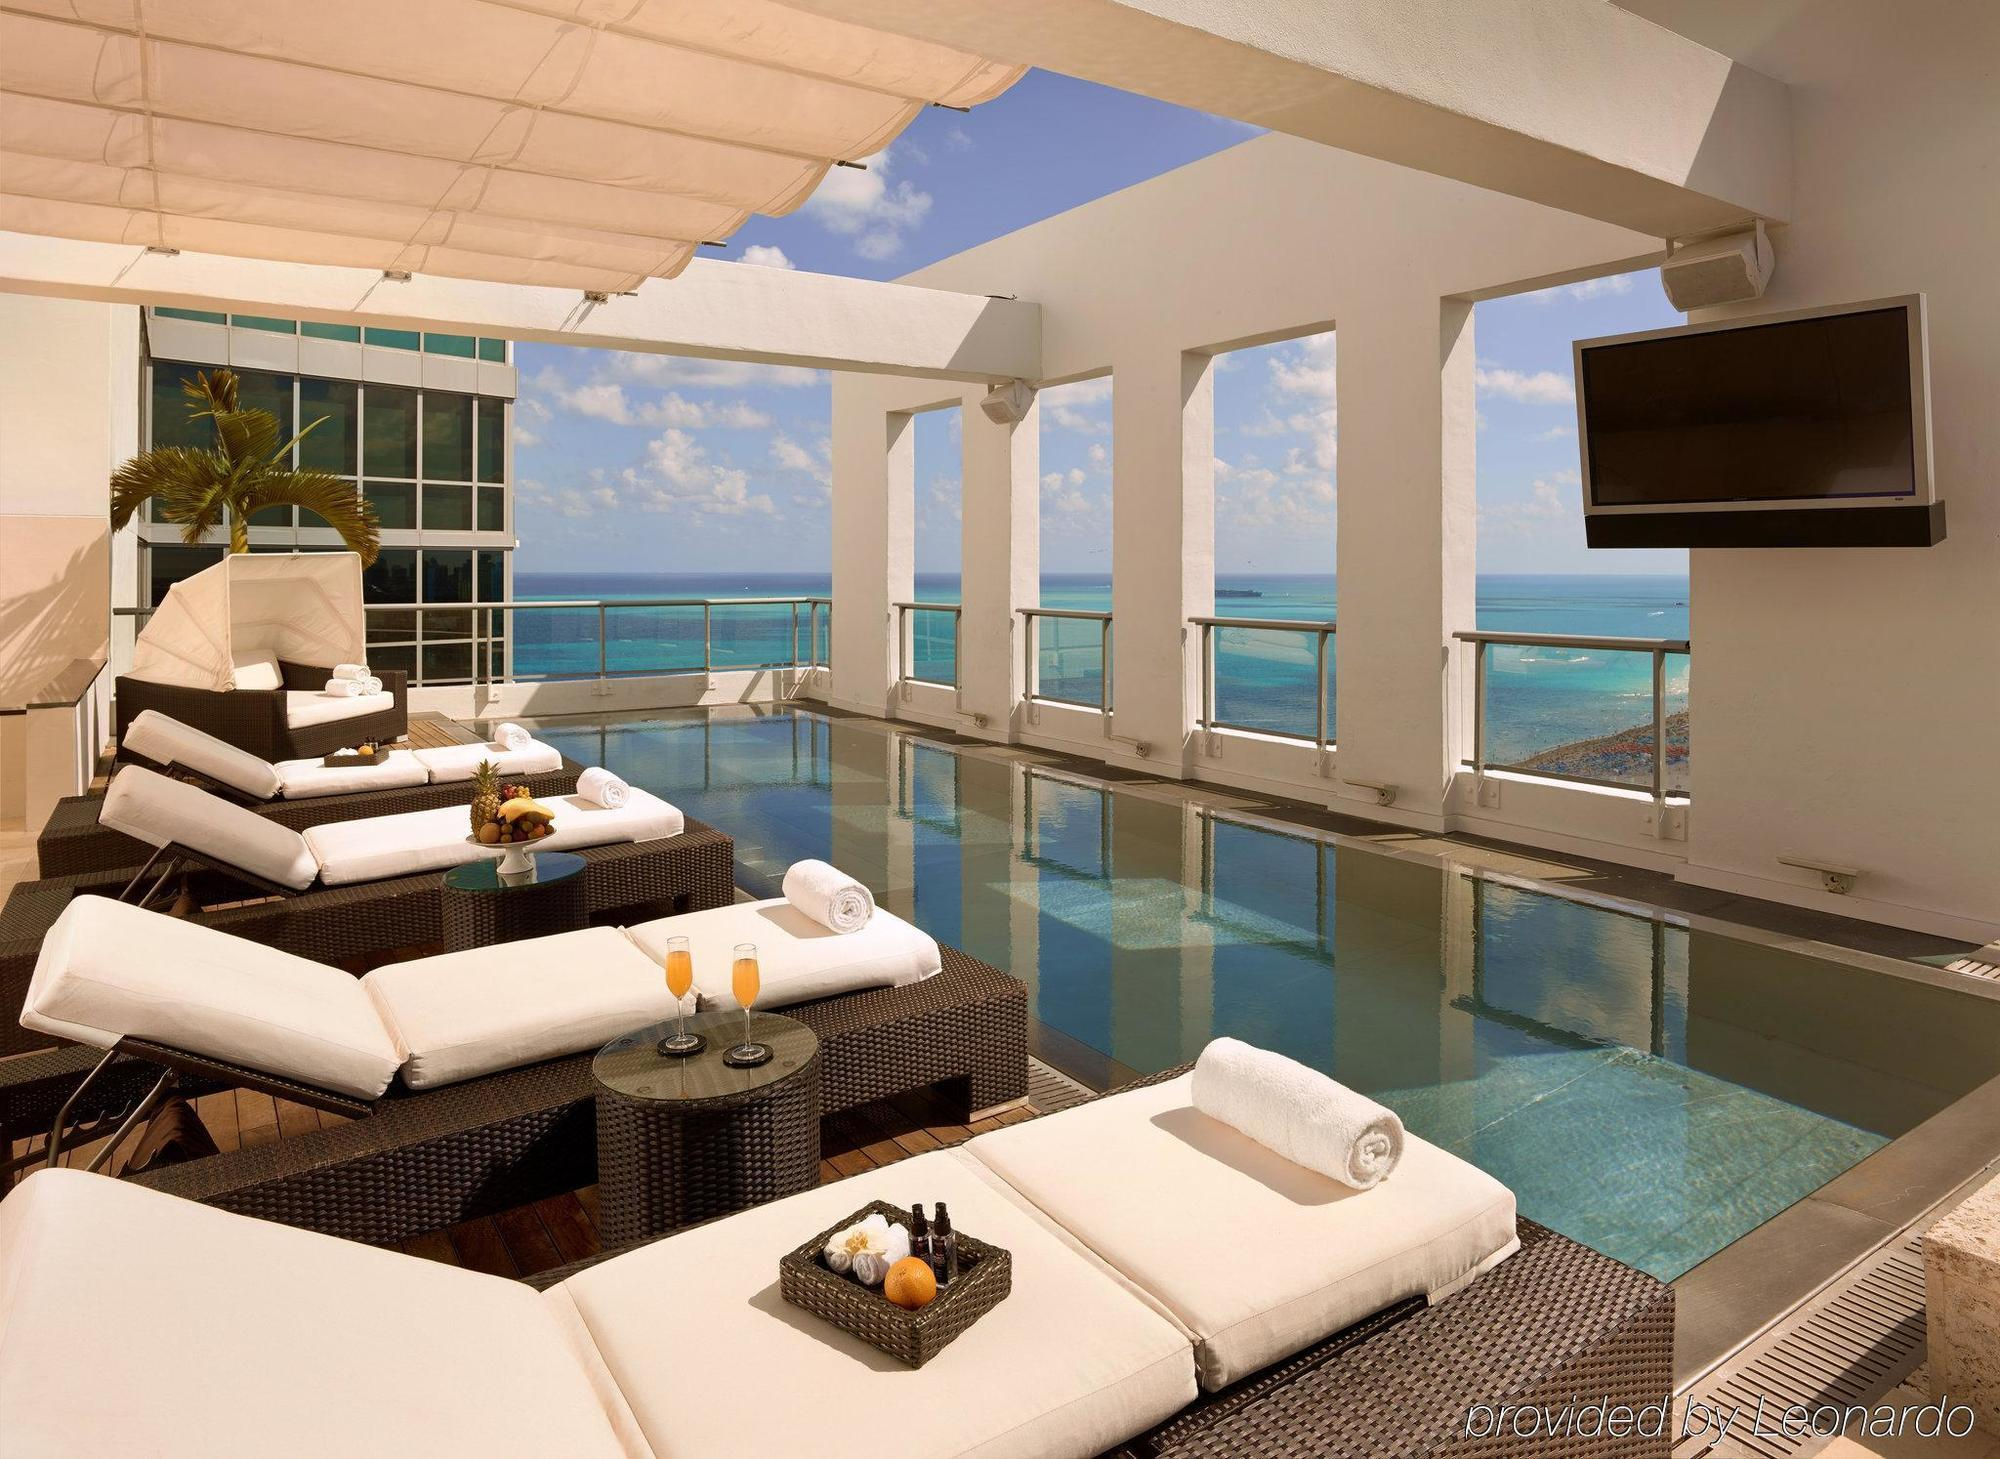 Top Hotel Suites in Miami Beach outdoor luxury design 7 Outdoor Luxury Design Ideas Top Hotel Suites in Miami Beach outdoor luxury design 7 Outdoor Luxury Design Ideas Top Hotel Suites in Miami Beach